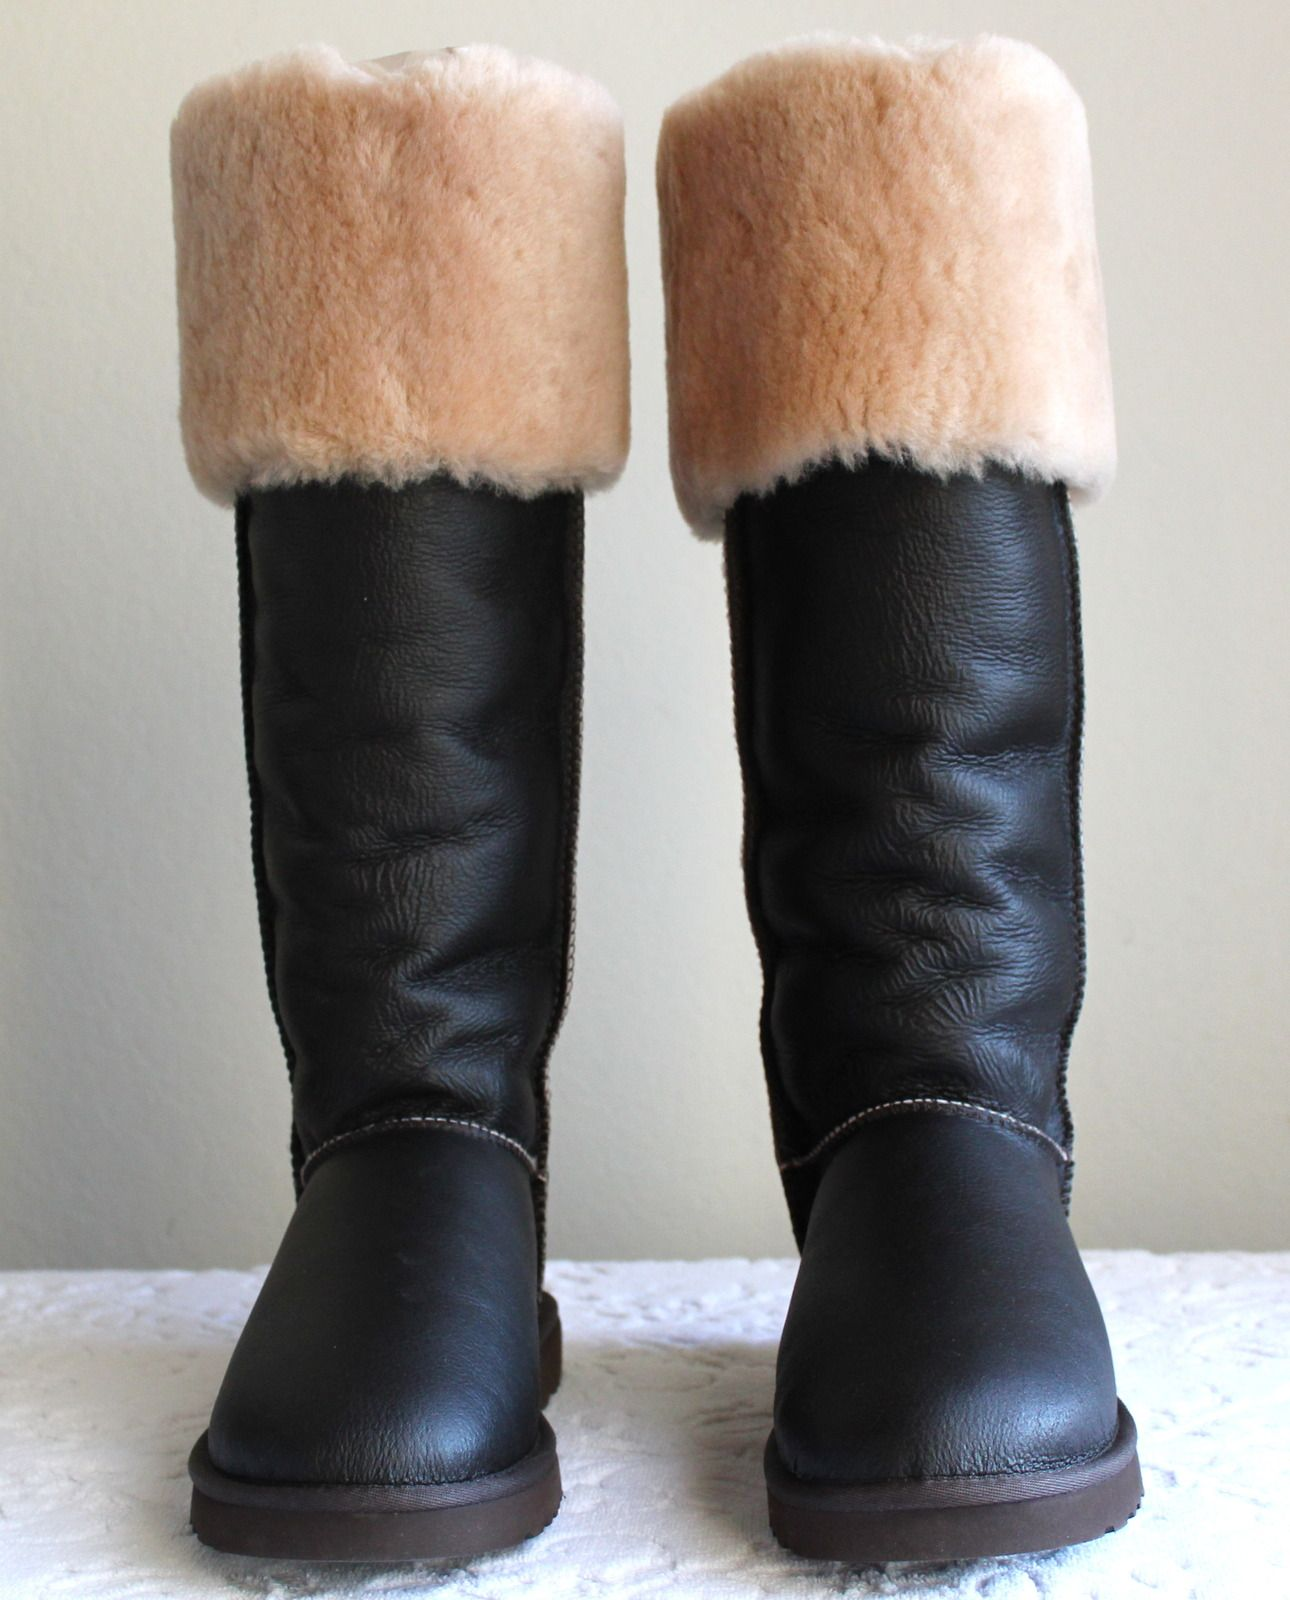 dd2d5a54b70 New UGG Australia Over The Knee Bailey Button 3175 W/LTSB Sz US 11 ...